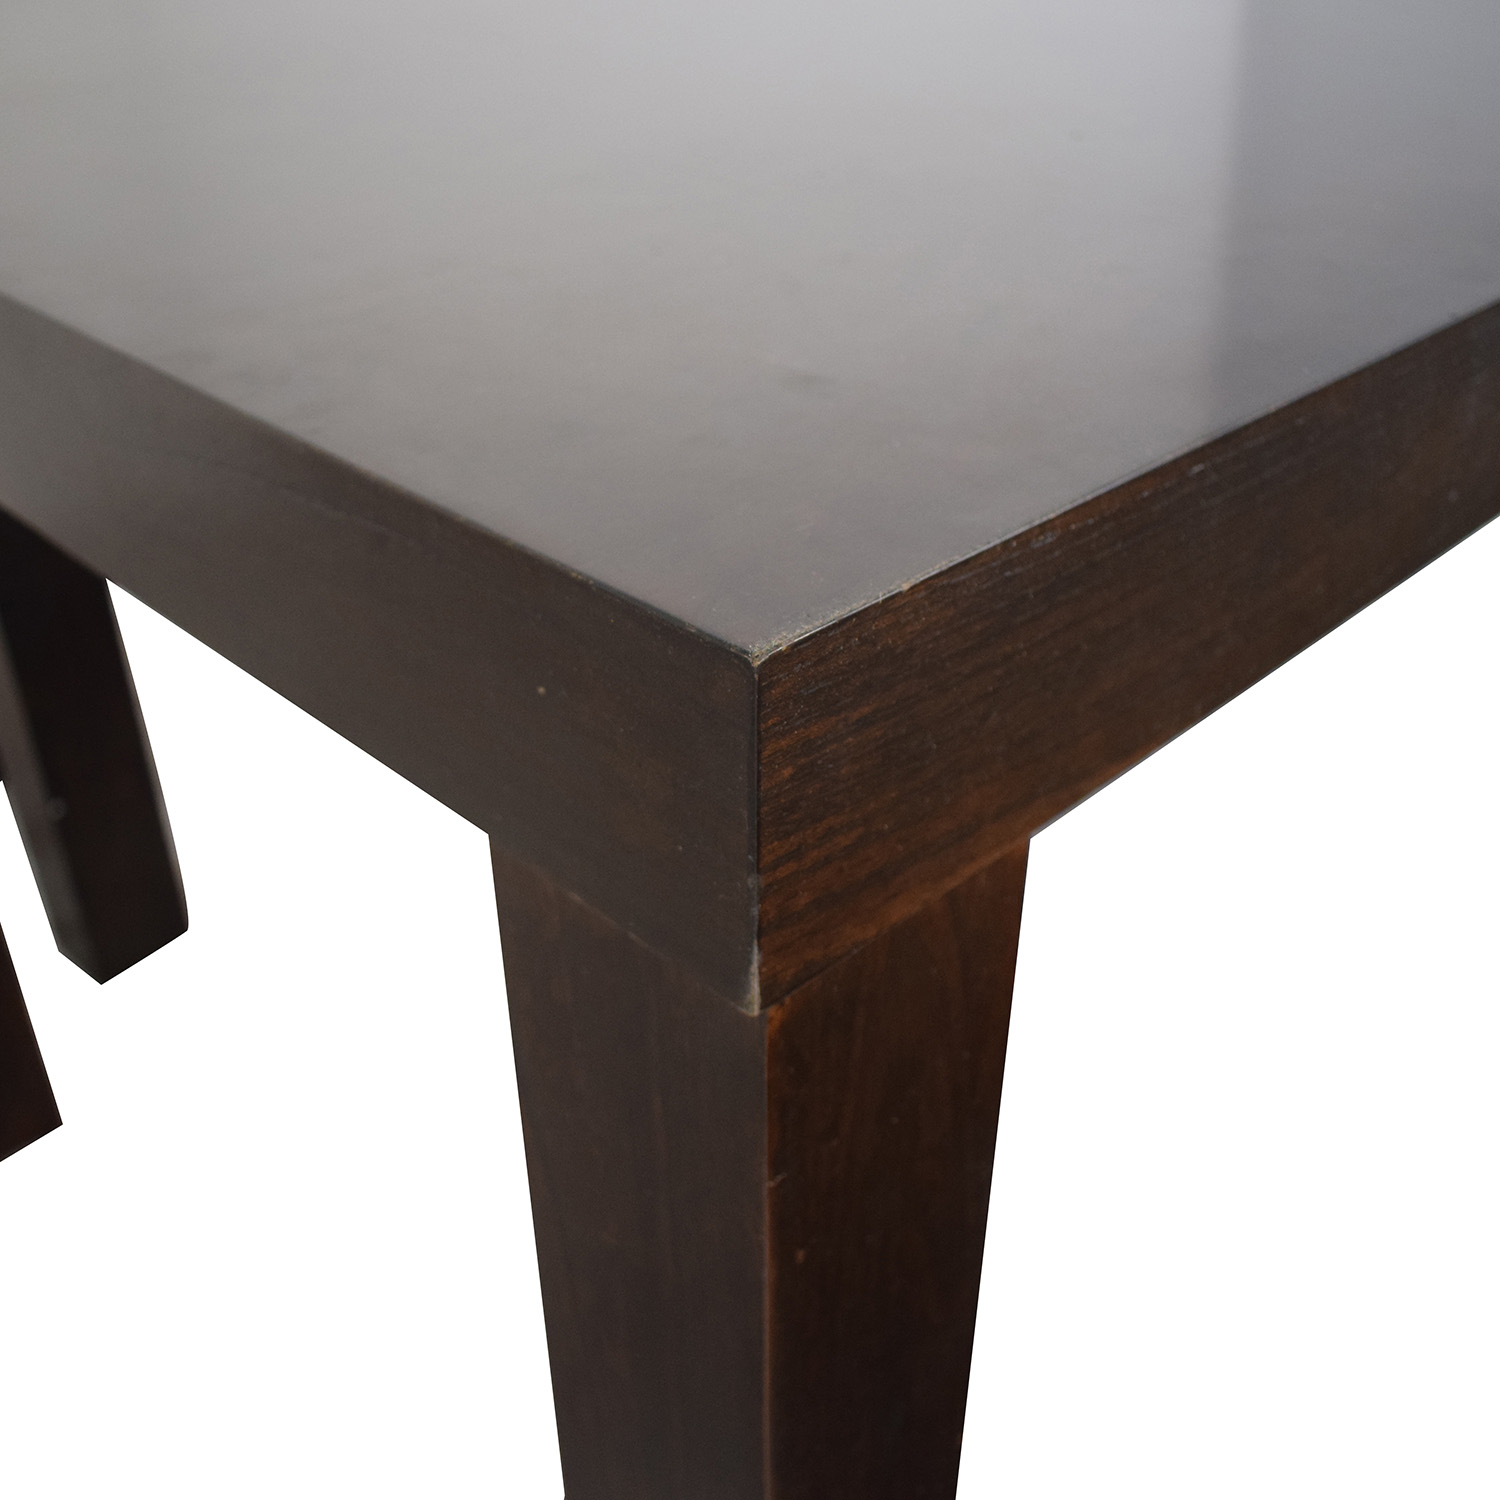 CB2 CB2 Indie Dining Table with Benches price